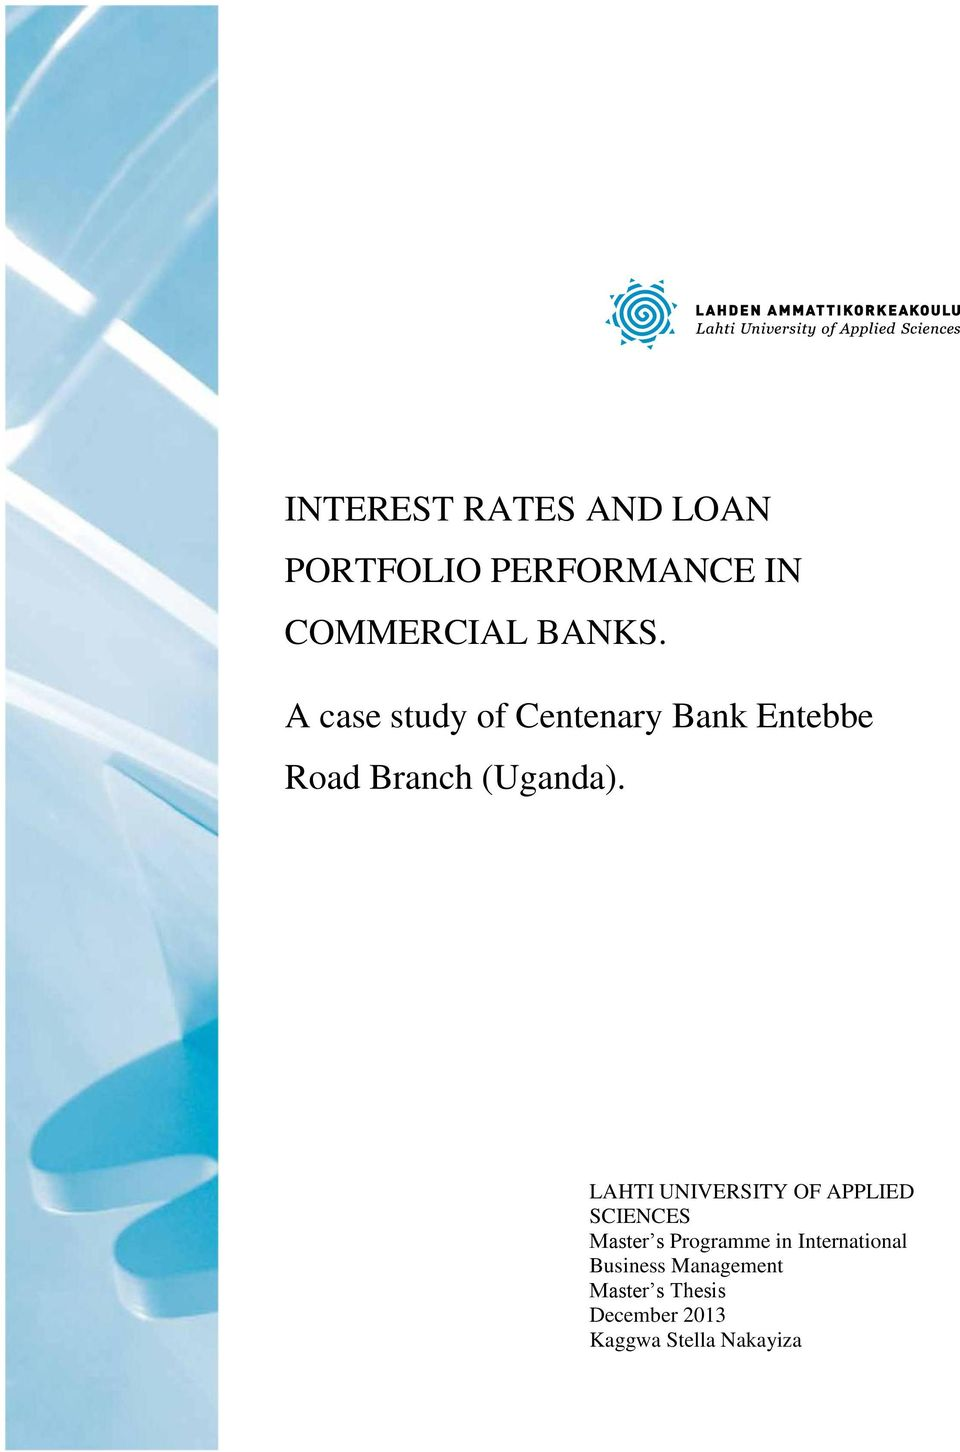 INTEREST RATES AND LOAN PORTFOLIO PERFORMANCE IN COMMERCIAL BANKS ...